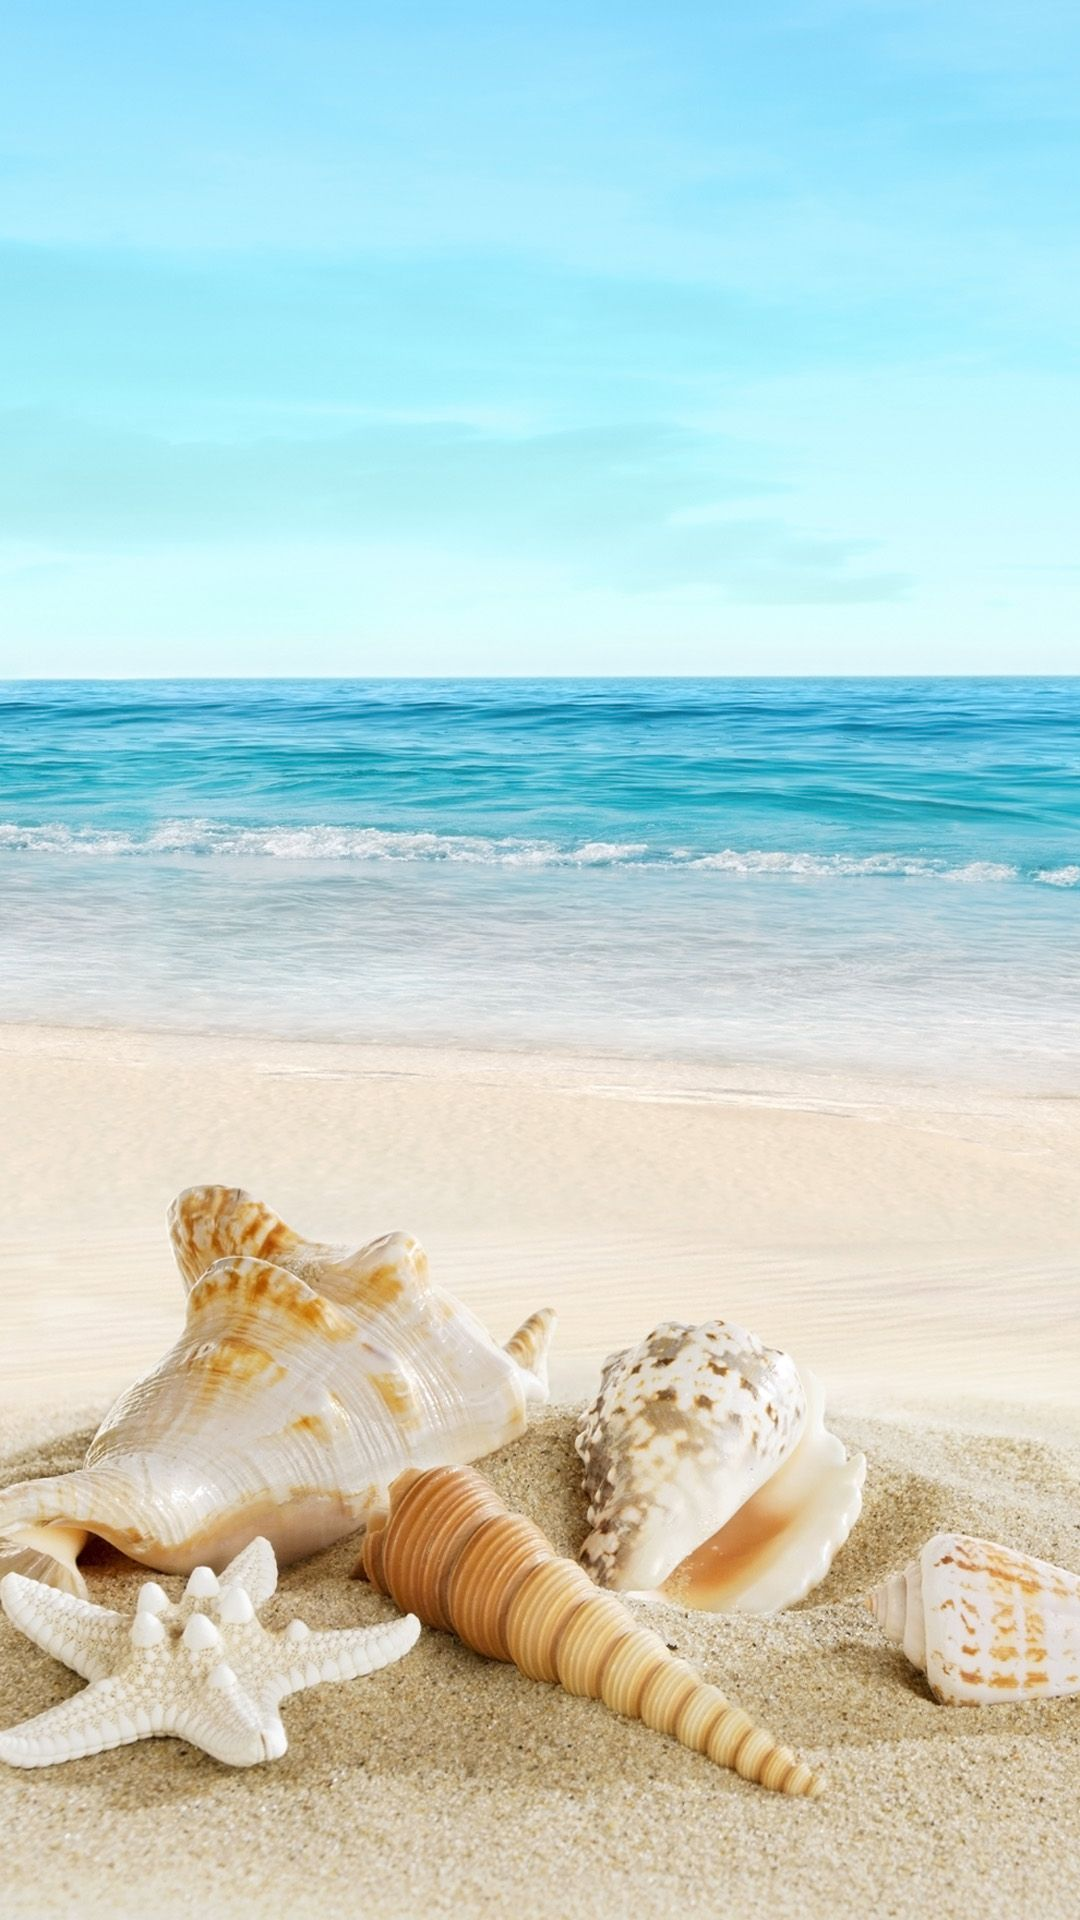 Nature Sunny Sea Shell Beach Iphone 6 Wallpaper Wallpapers I